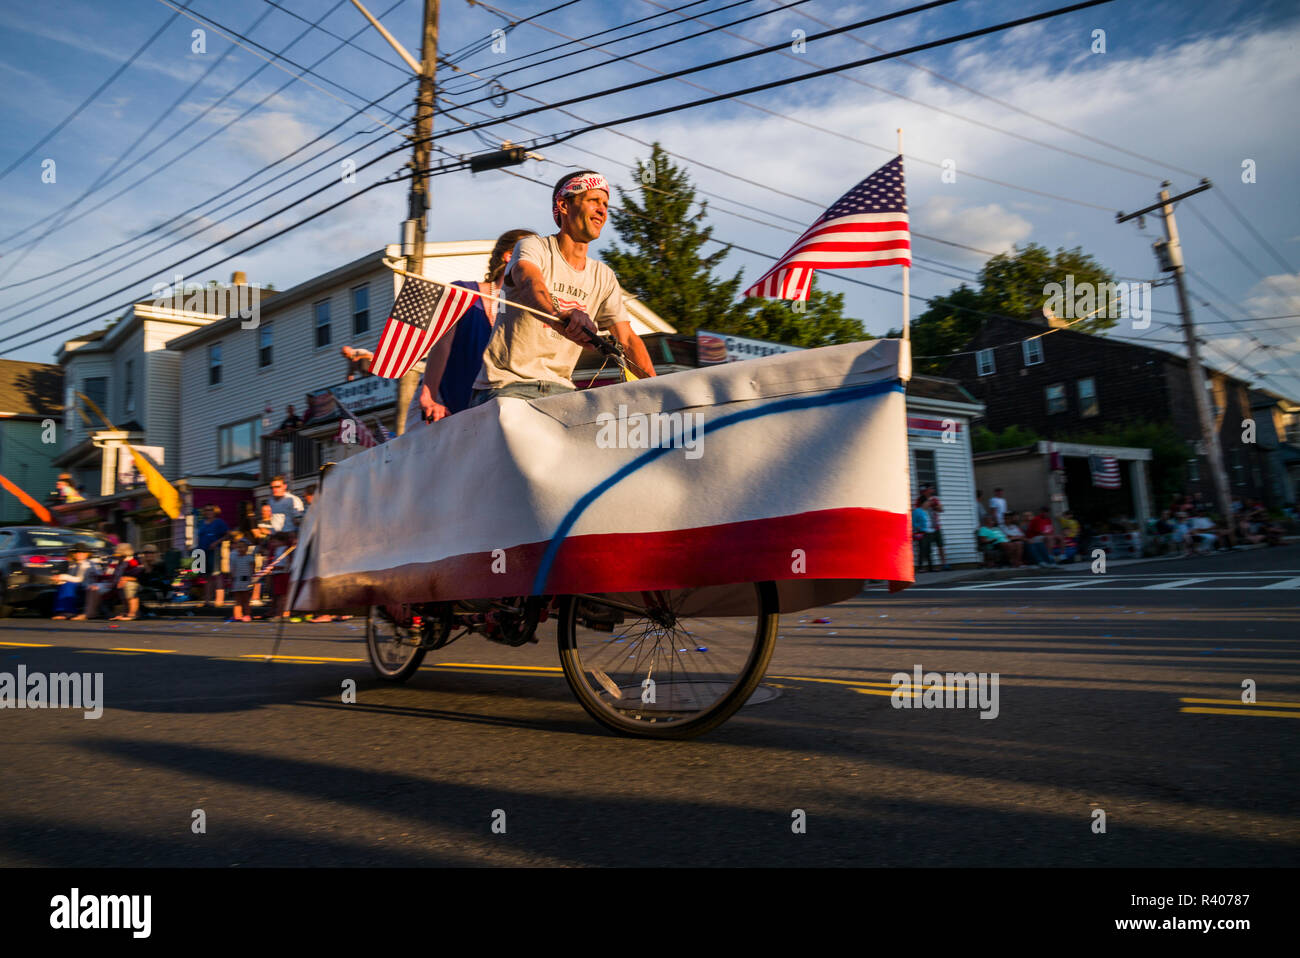 USA, Massachusetts, Cape Ann, Gloucester, Fourth of July parade, boat-shaped bicycle Stock Photo